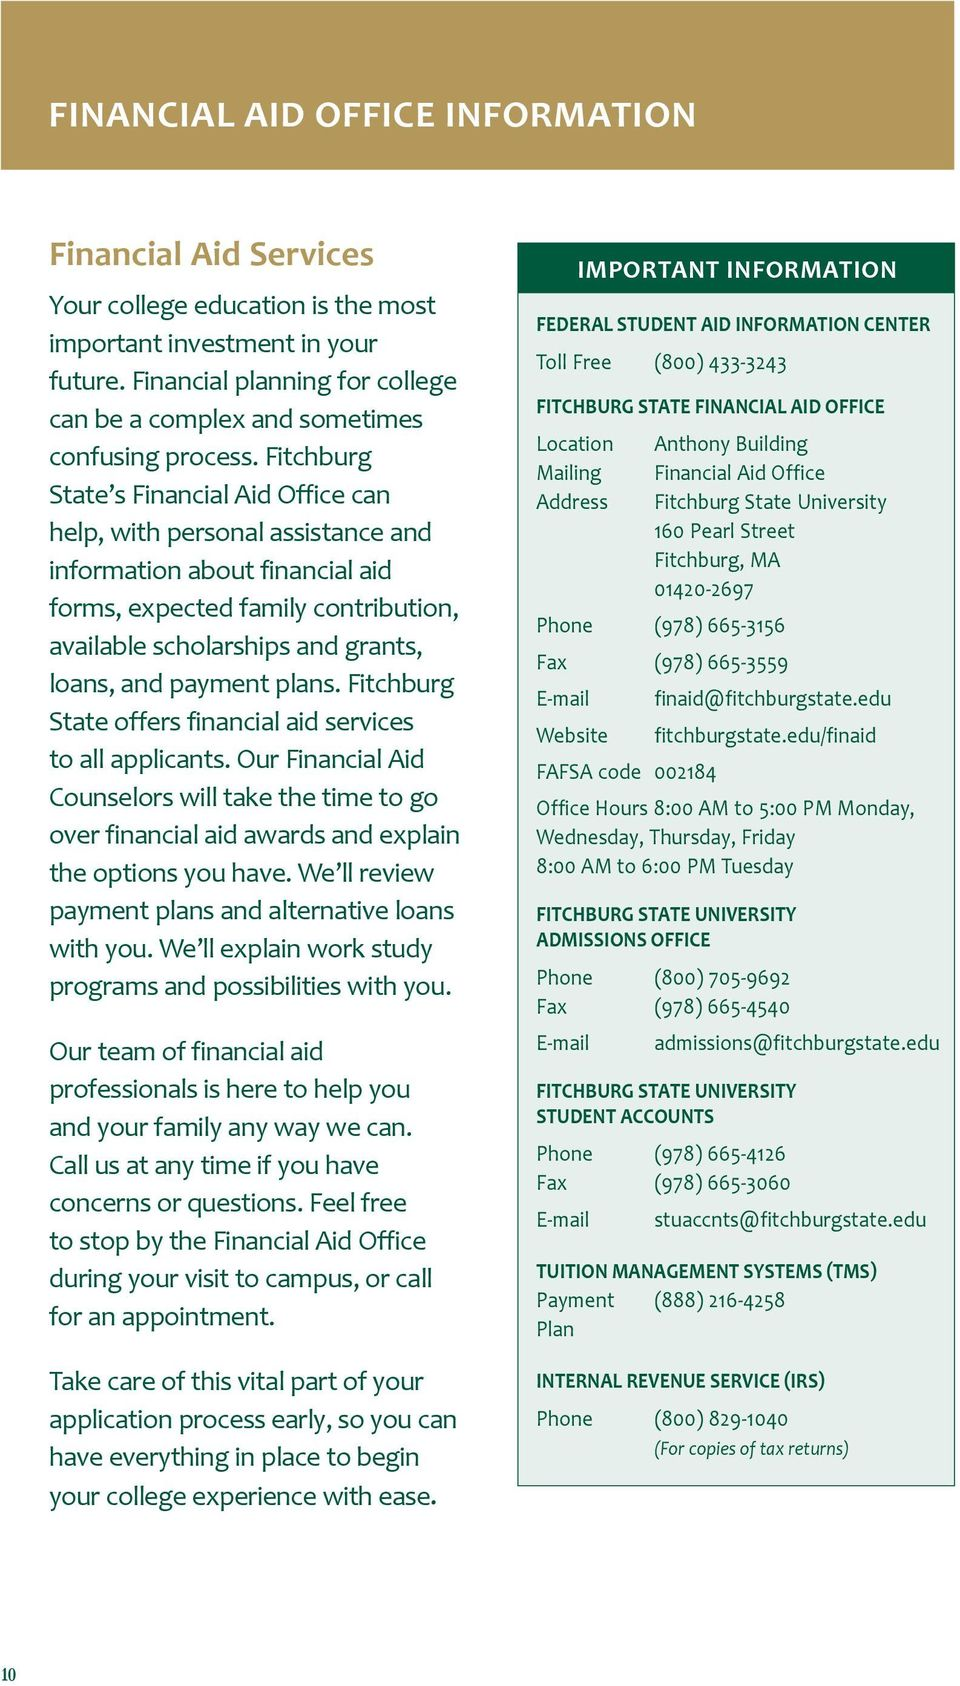 Fitchburg State s Financial Aid Office can help, with personal assistance and information about financial aid forms, expected family contribution, available scholarships and grants, loans, and